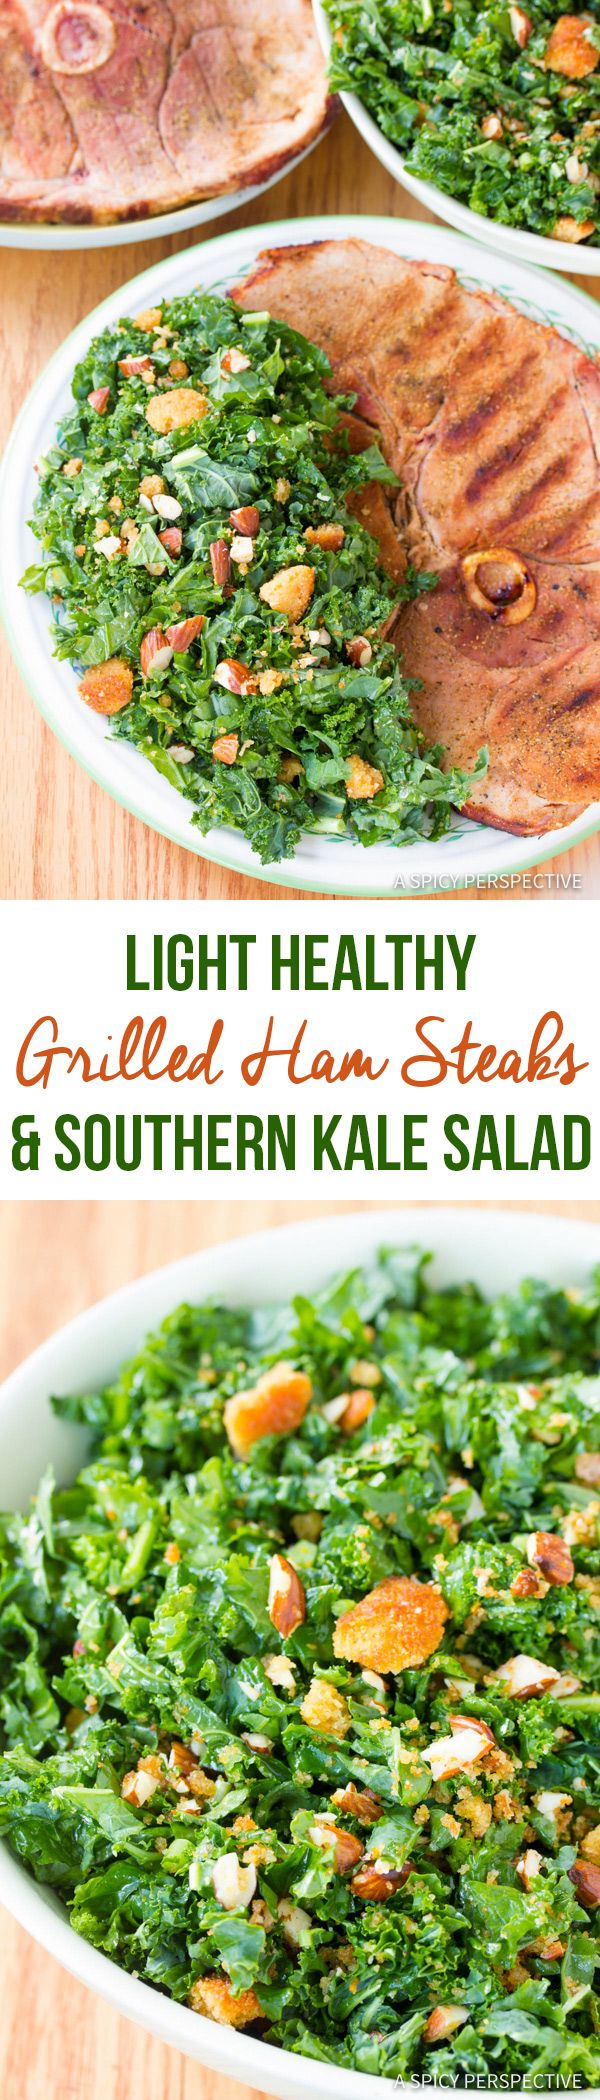 Light Healthy Grilled Ham Steaks with Southern Kale Salad | ASpicyPerspective.com via @spicyperspectiv